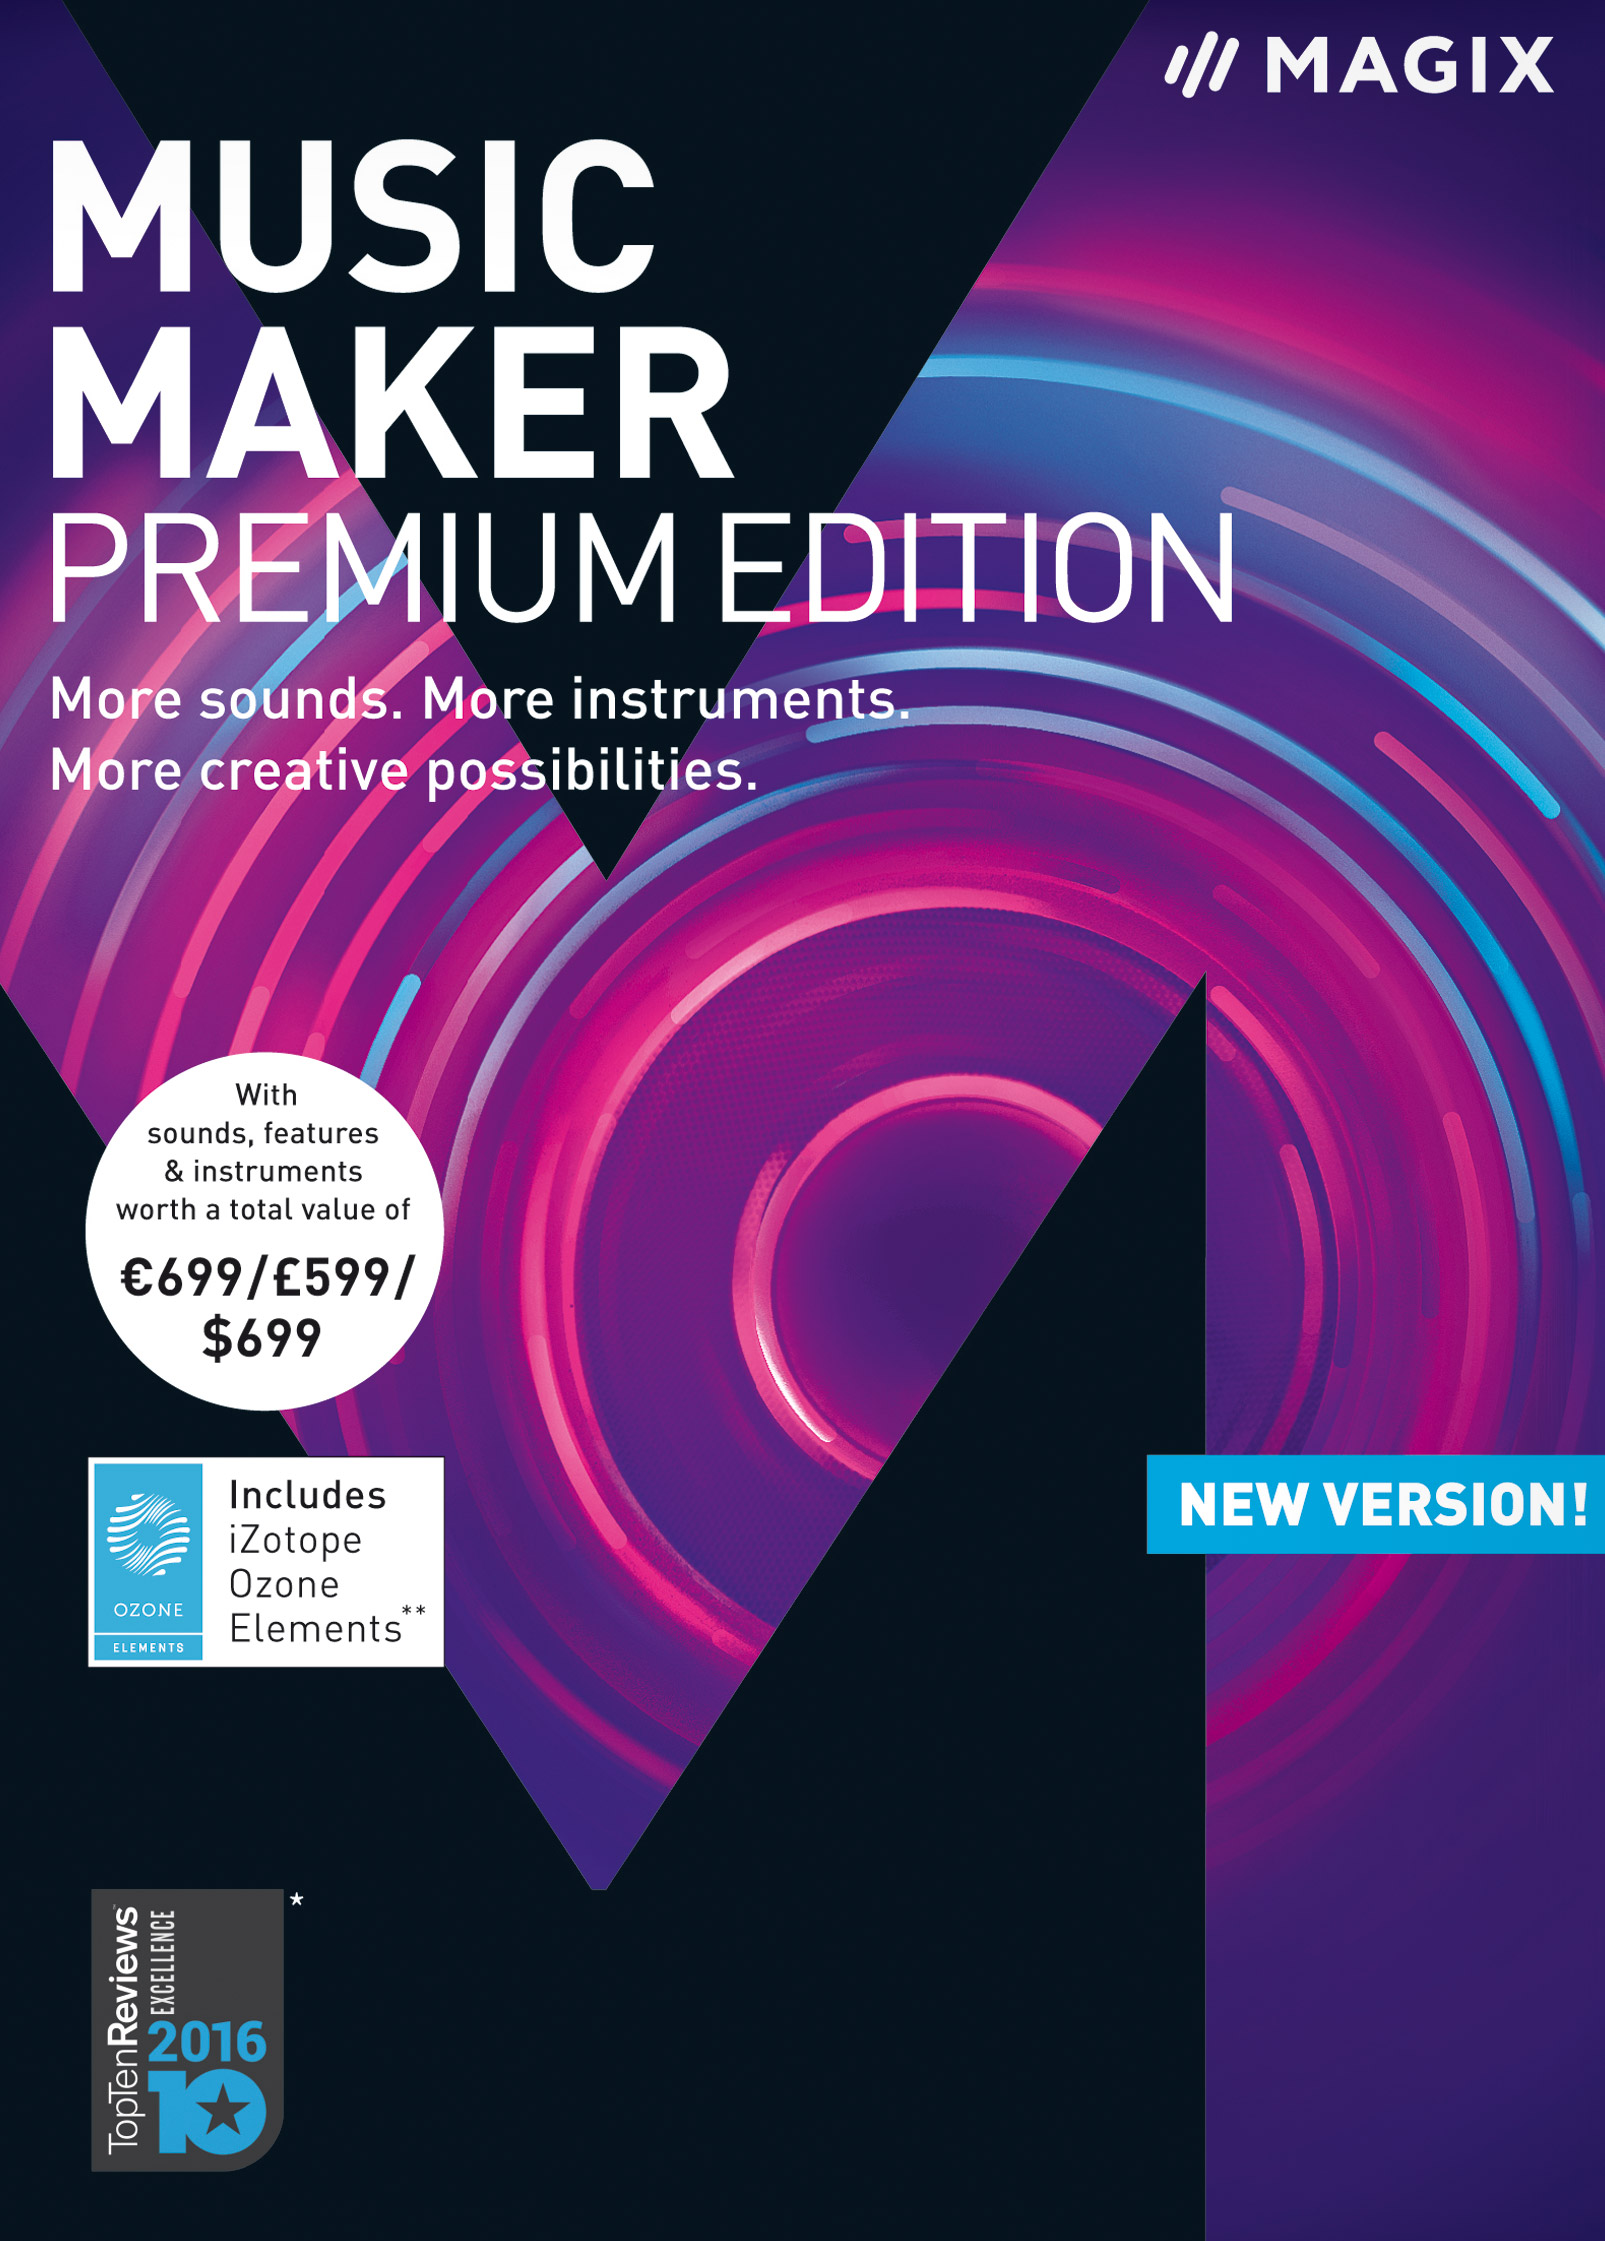 MAGIX Music Maker – 2018 Premium Edition – The audio software with more sounds, instruments and creative options [Download] by MAGIX